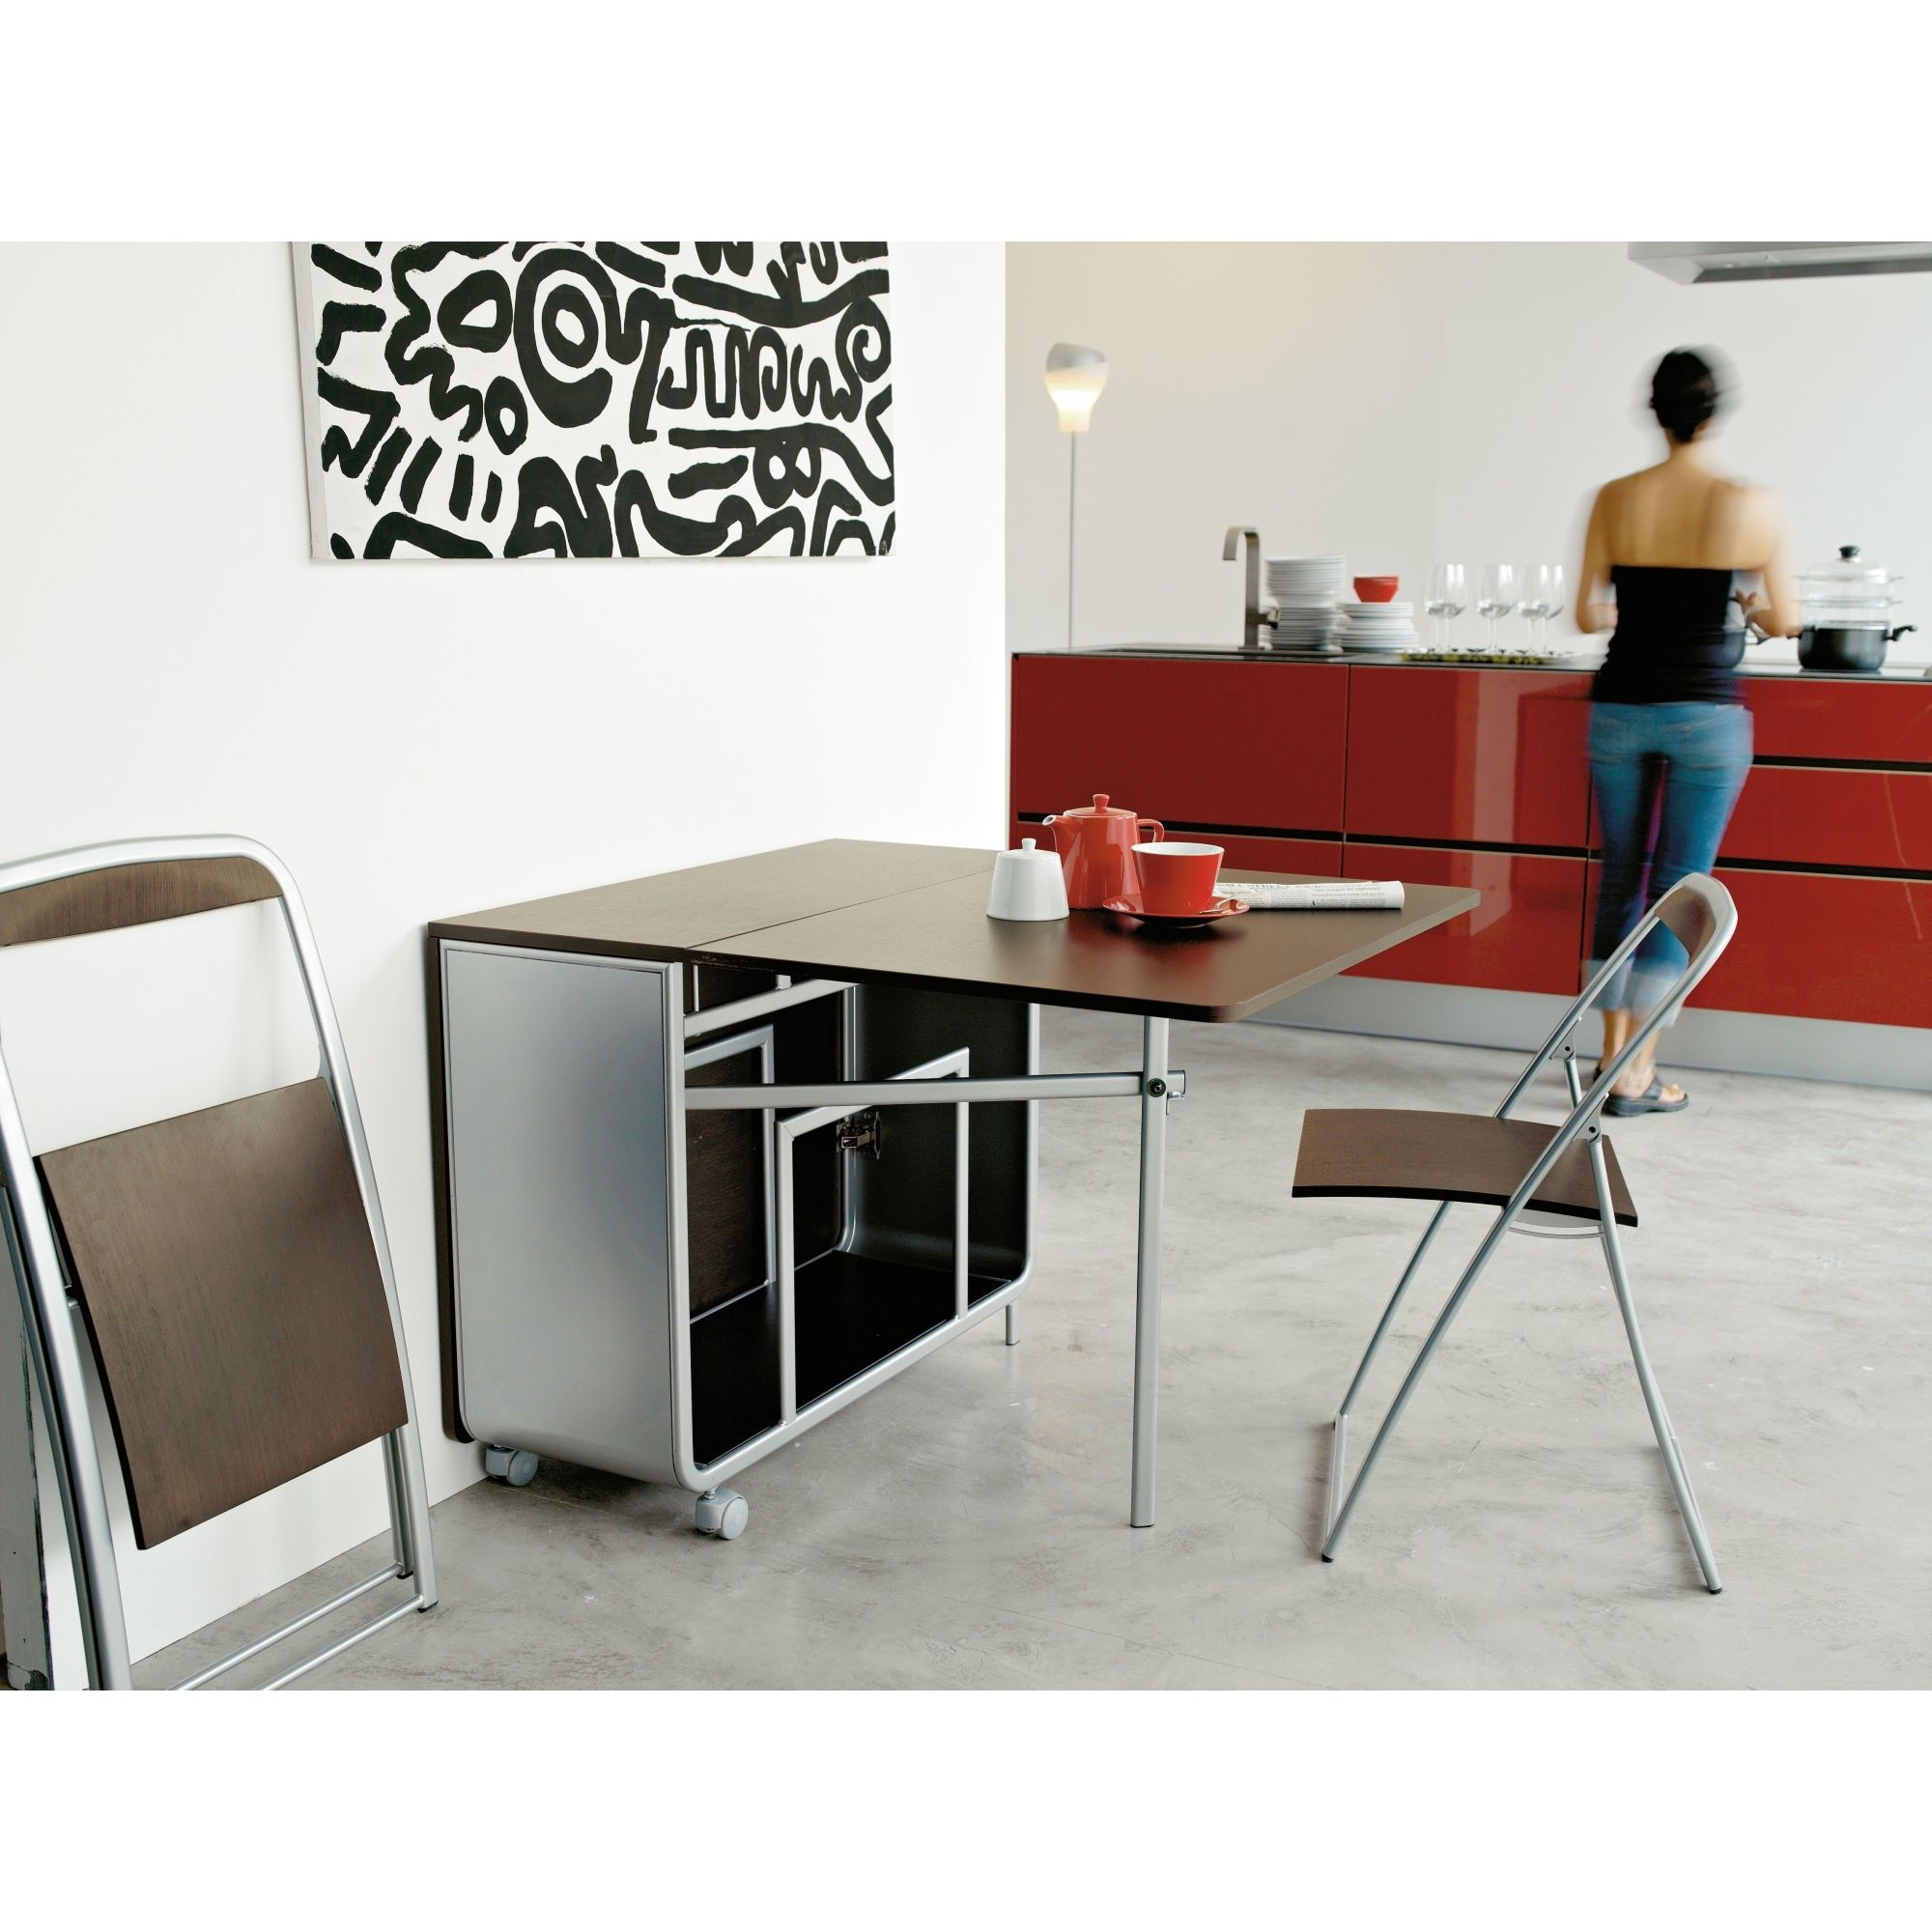 Fold Out Wall Dining Table httpbrutabolincom Pinterest Walls